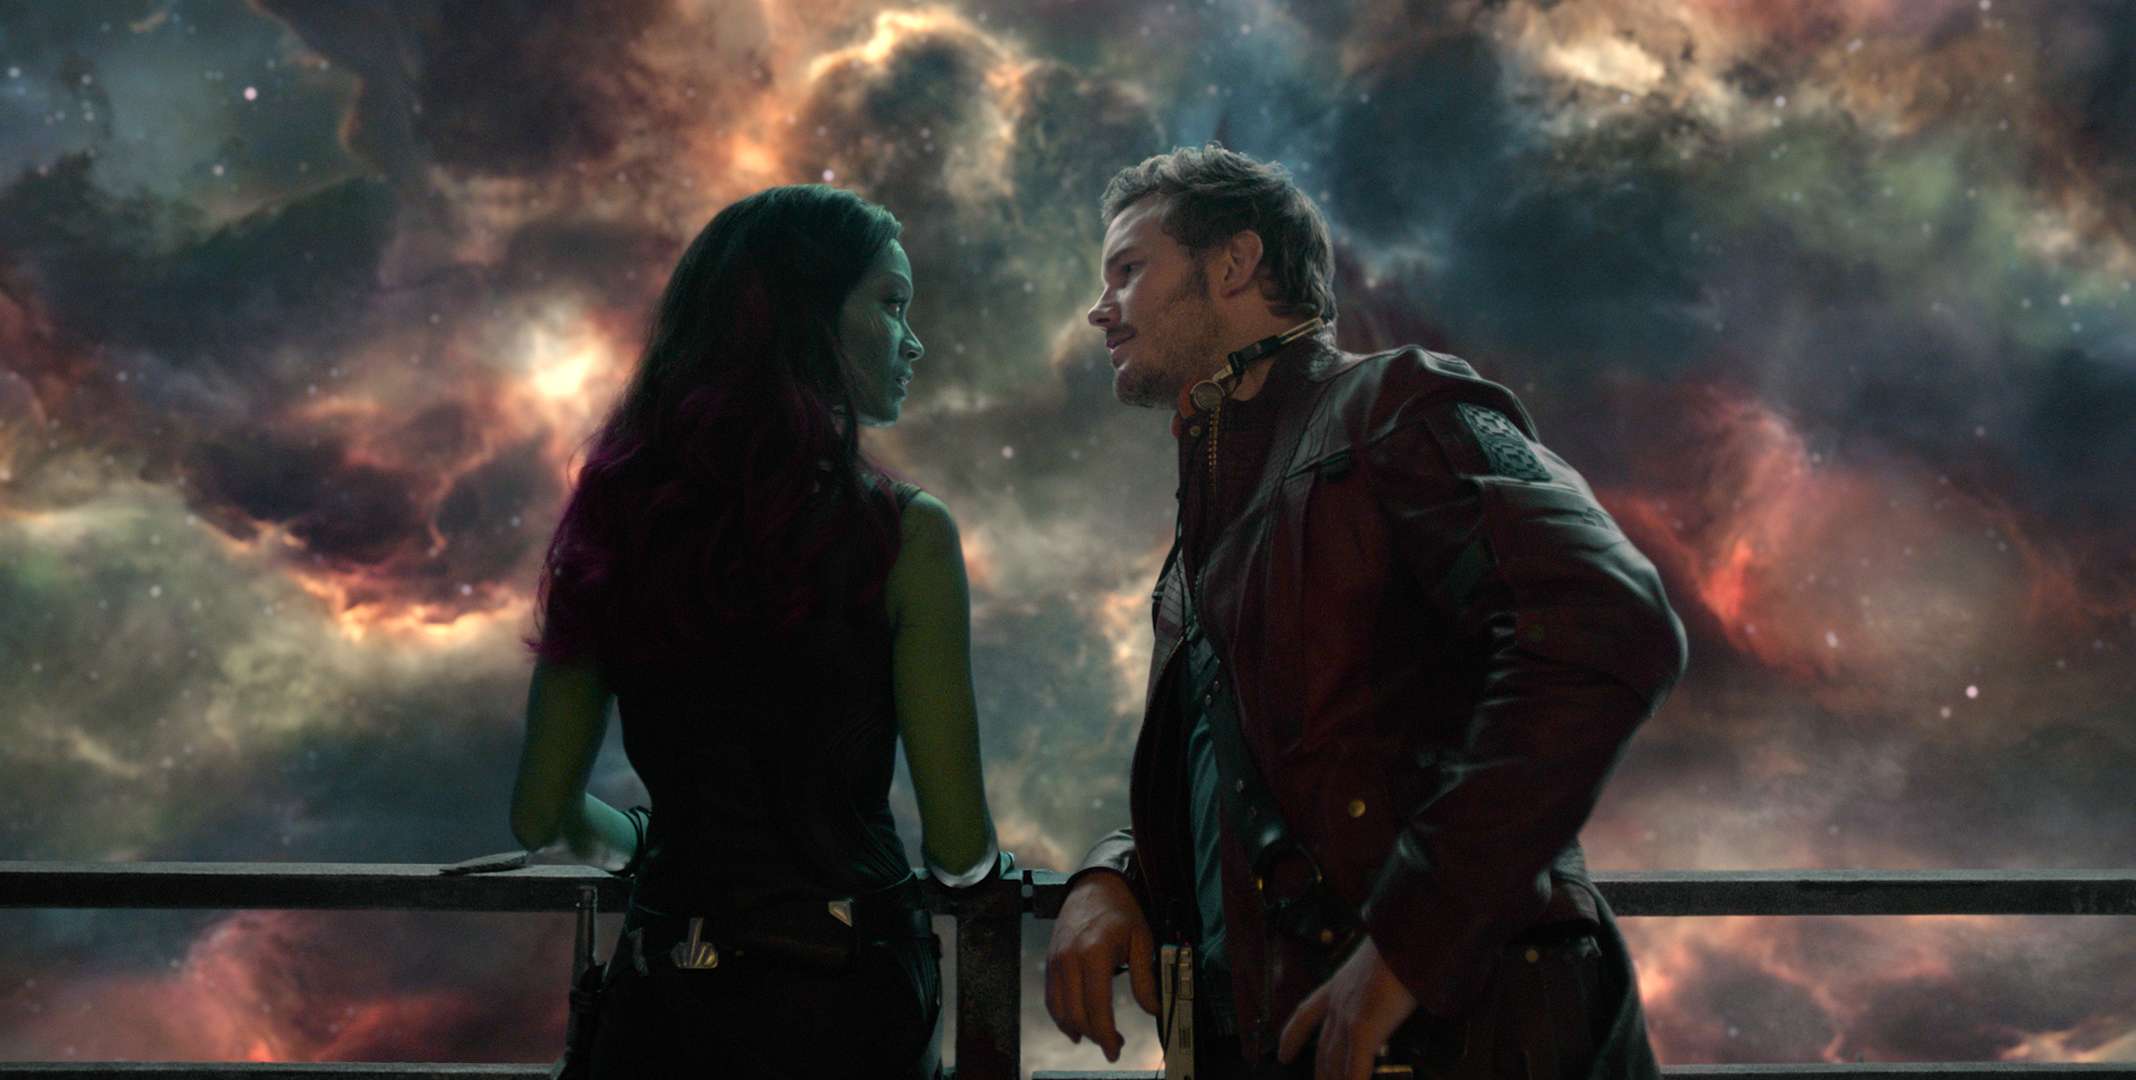 Star Lord And Gamora From Guardians Of The Galaxy Desktop Wallpaper